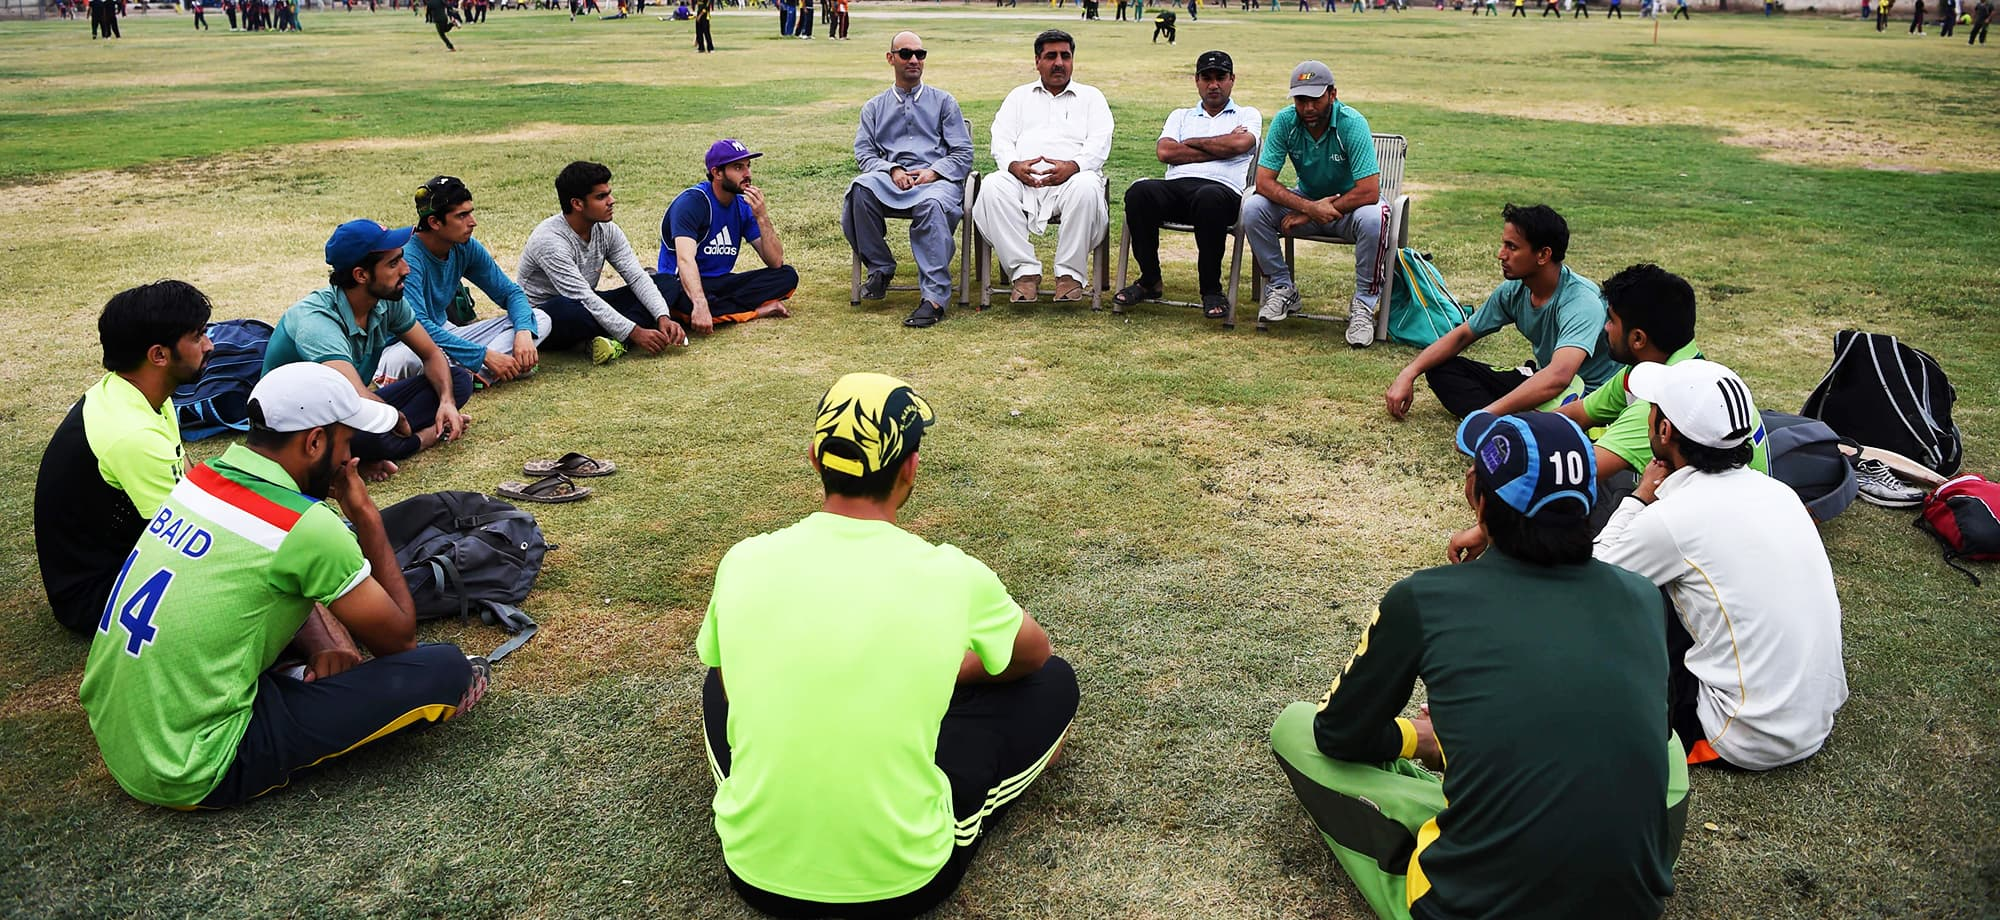 Asghar Khan head coach of the ICMS cricket club and former coach of players in the Afghan national cricket team, discusses cricket with young Pakistani cricketers at the Gymkhana Cricket Academy in Peshawar. — AFP